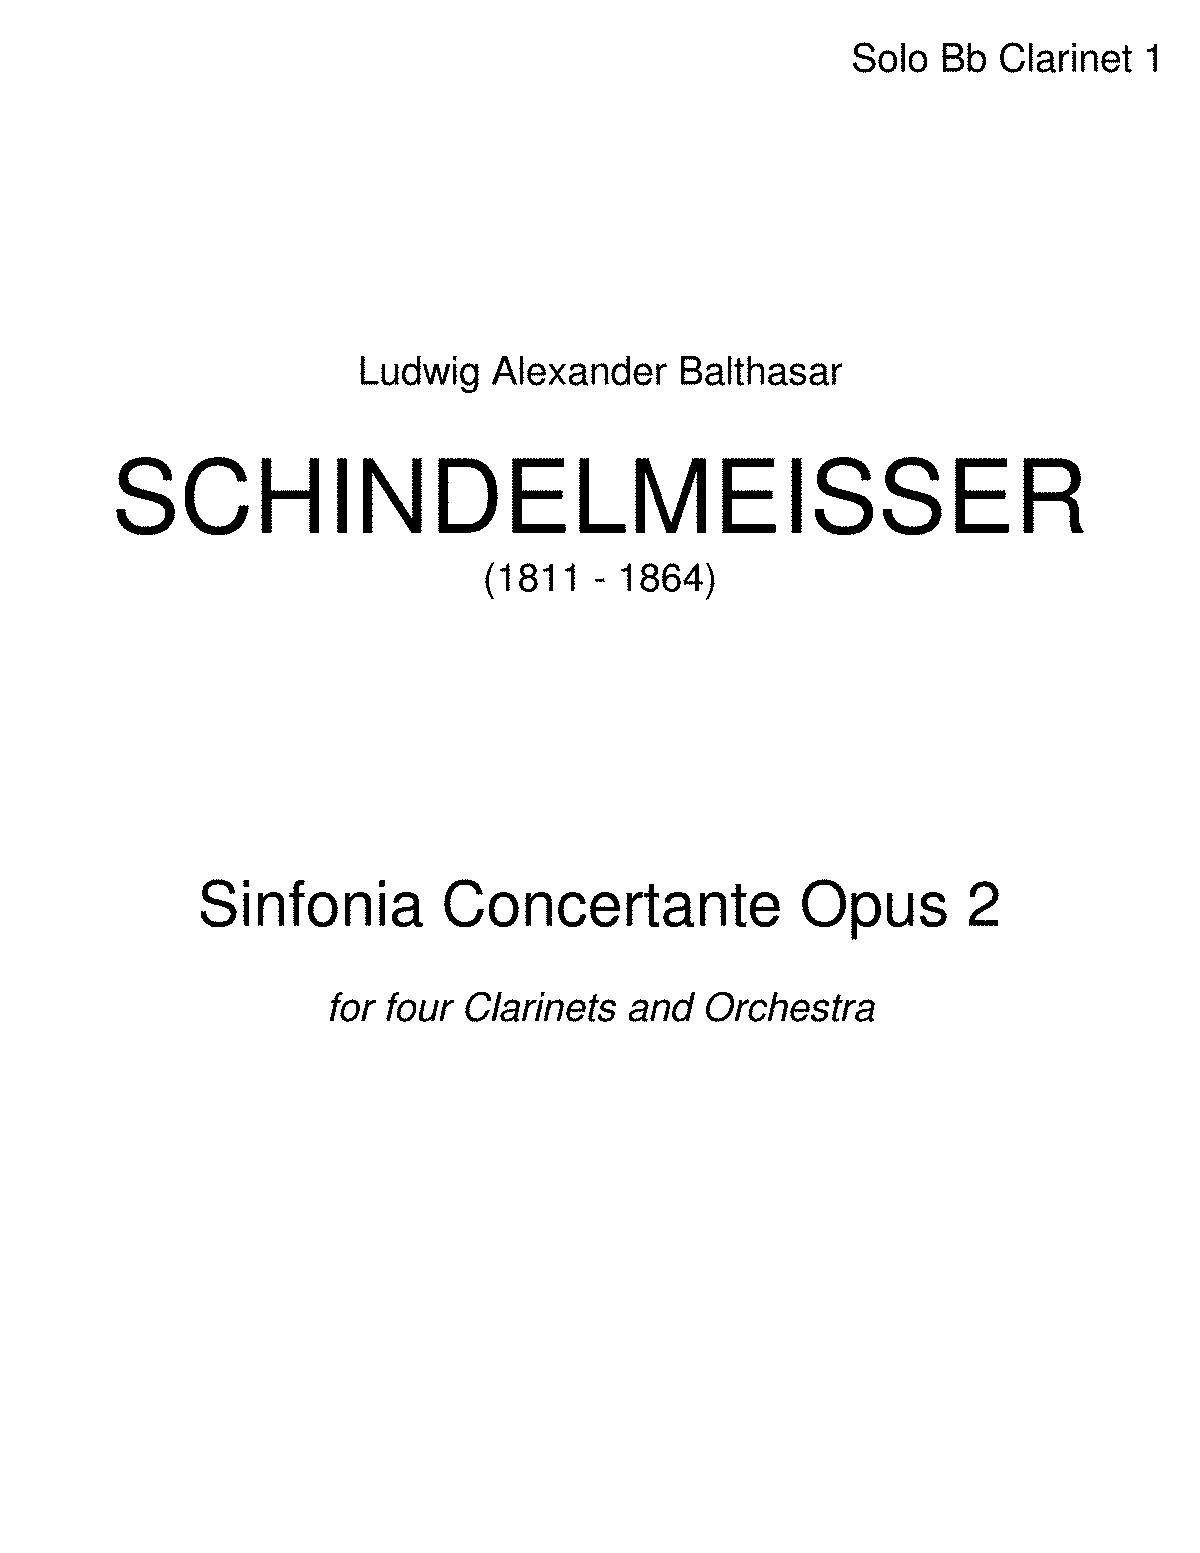 PMLP690597-Schindelmeisser Ludwig.Sinfonia Concertante.Opus 2.soloists.seely.pdf